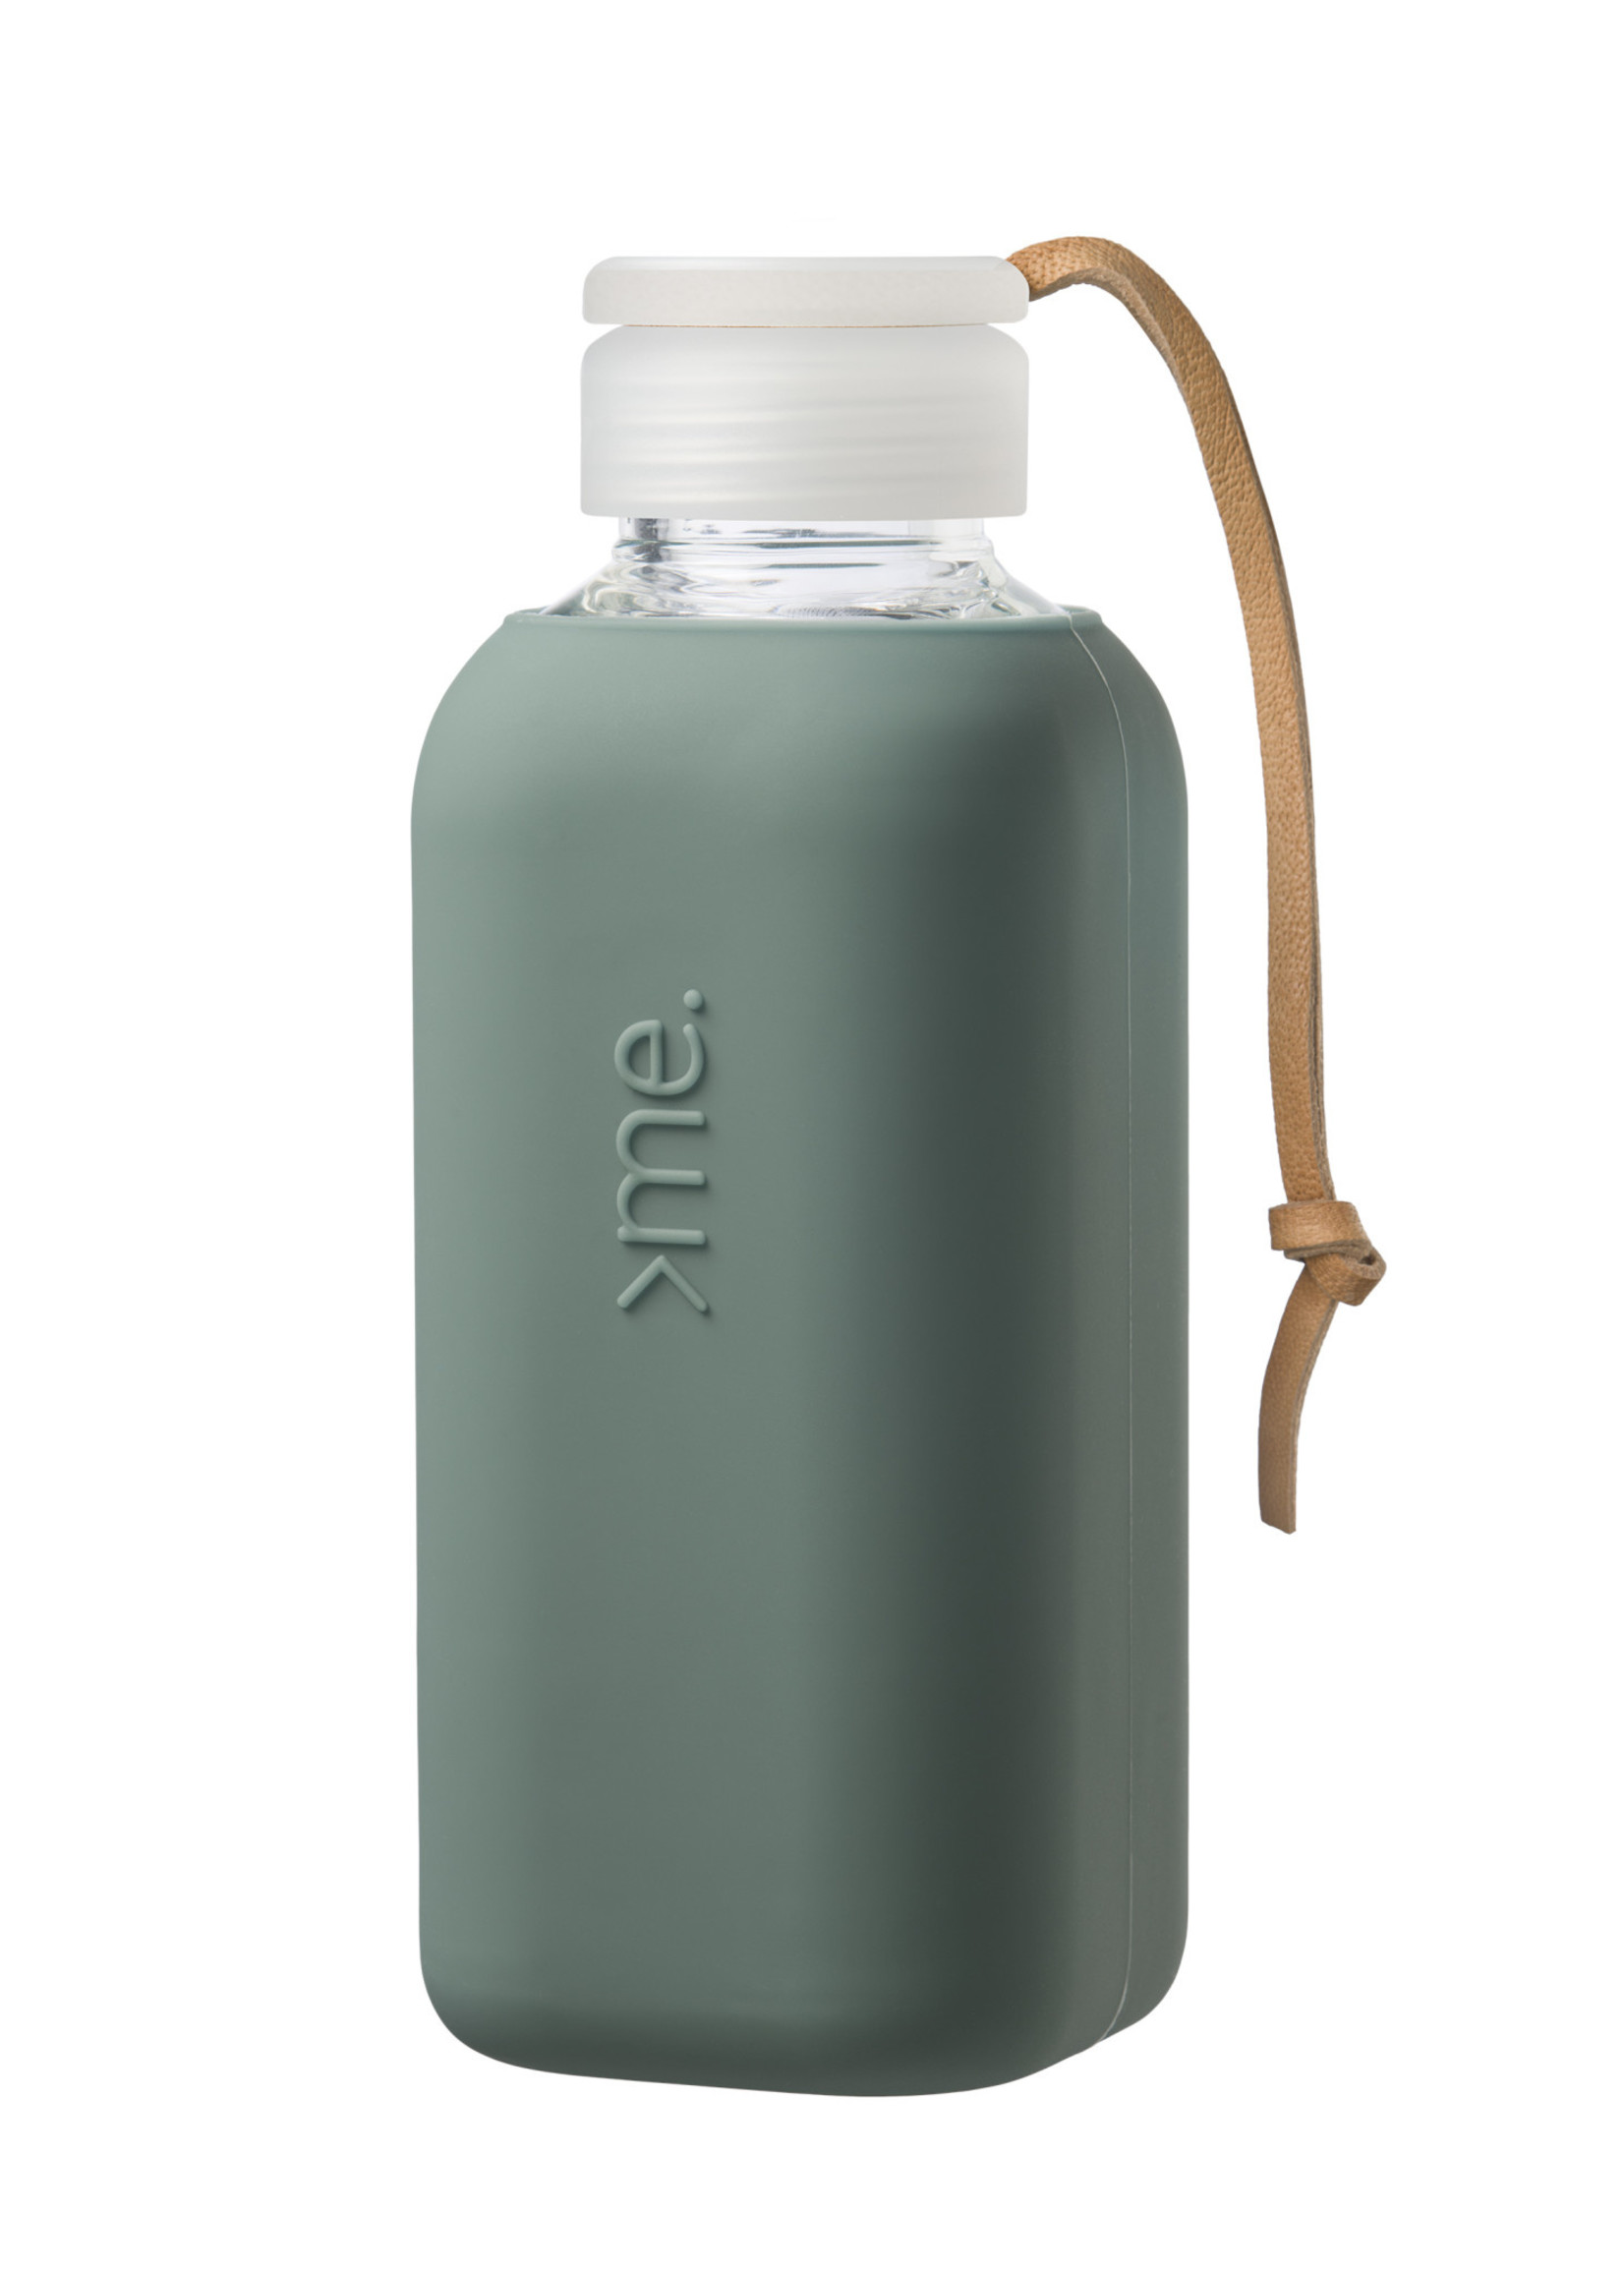 SQUIREME SQUIREME Y1 Bottle 600ml PINE GREEN